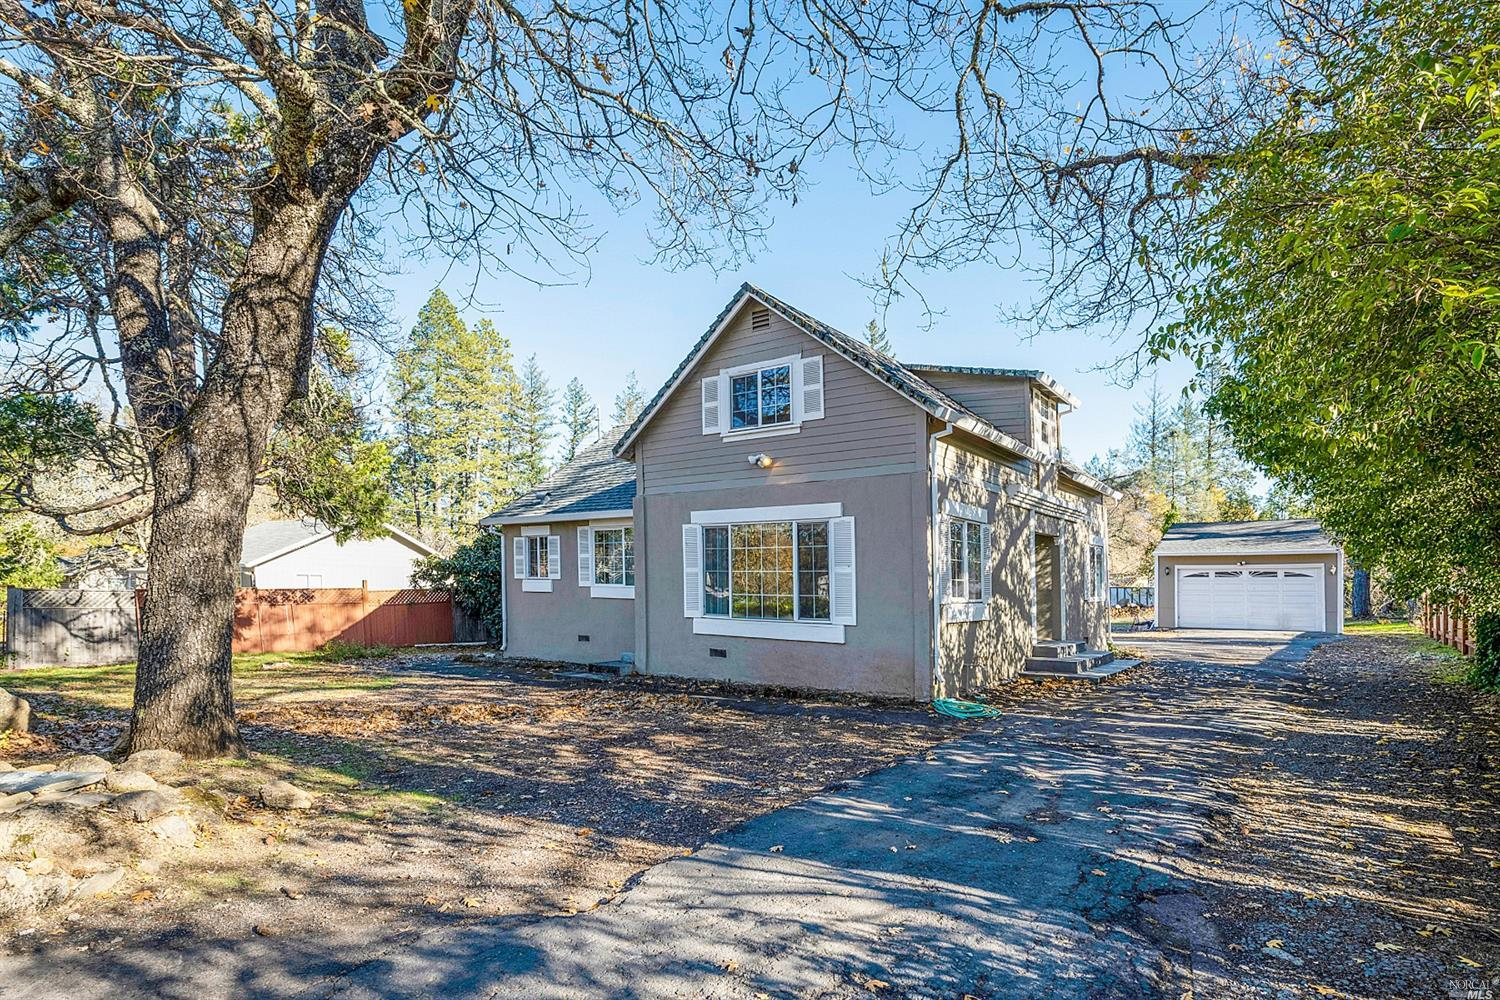 This charming 4b/2.5 bath home cottage rests on 0.45 acres on a quiet street in Angwin, just minutes from the College Market and Pacific Union College. Well maintained with several upgrades including new granite kitchen counters and new carpet in the master bedroom. The 1B/1B guest or rental house provides additional value.In addition the home includes central heating and AC and a detached 2 car garage. Enjoy country living just 15 minutes from the shopping and restaurants of downtown St. Helena. Great location!